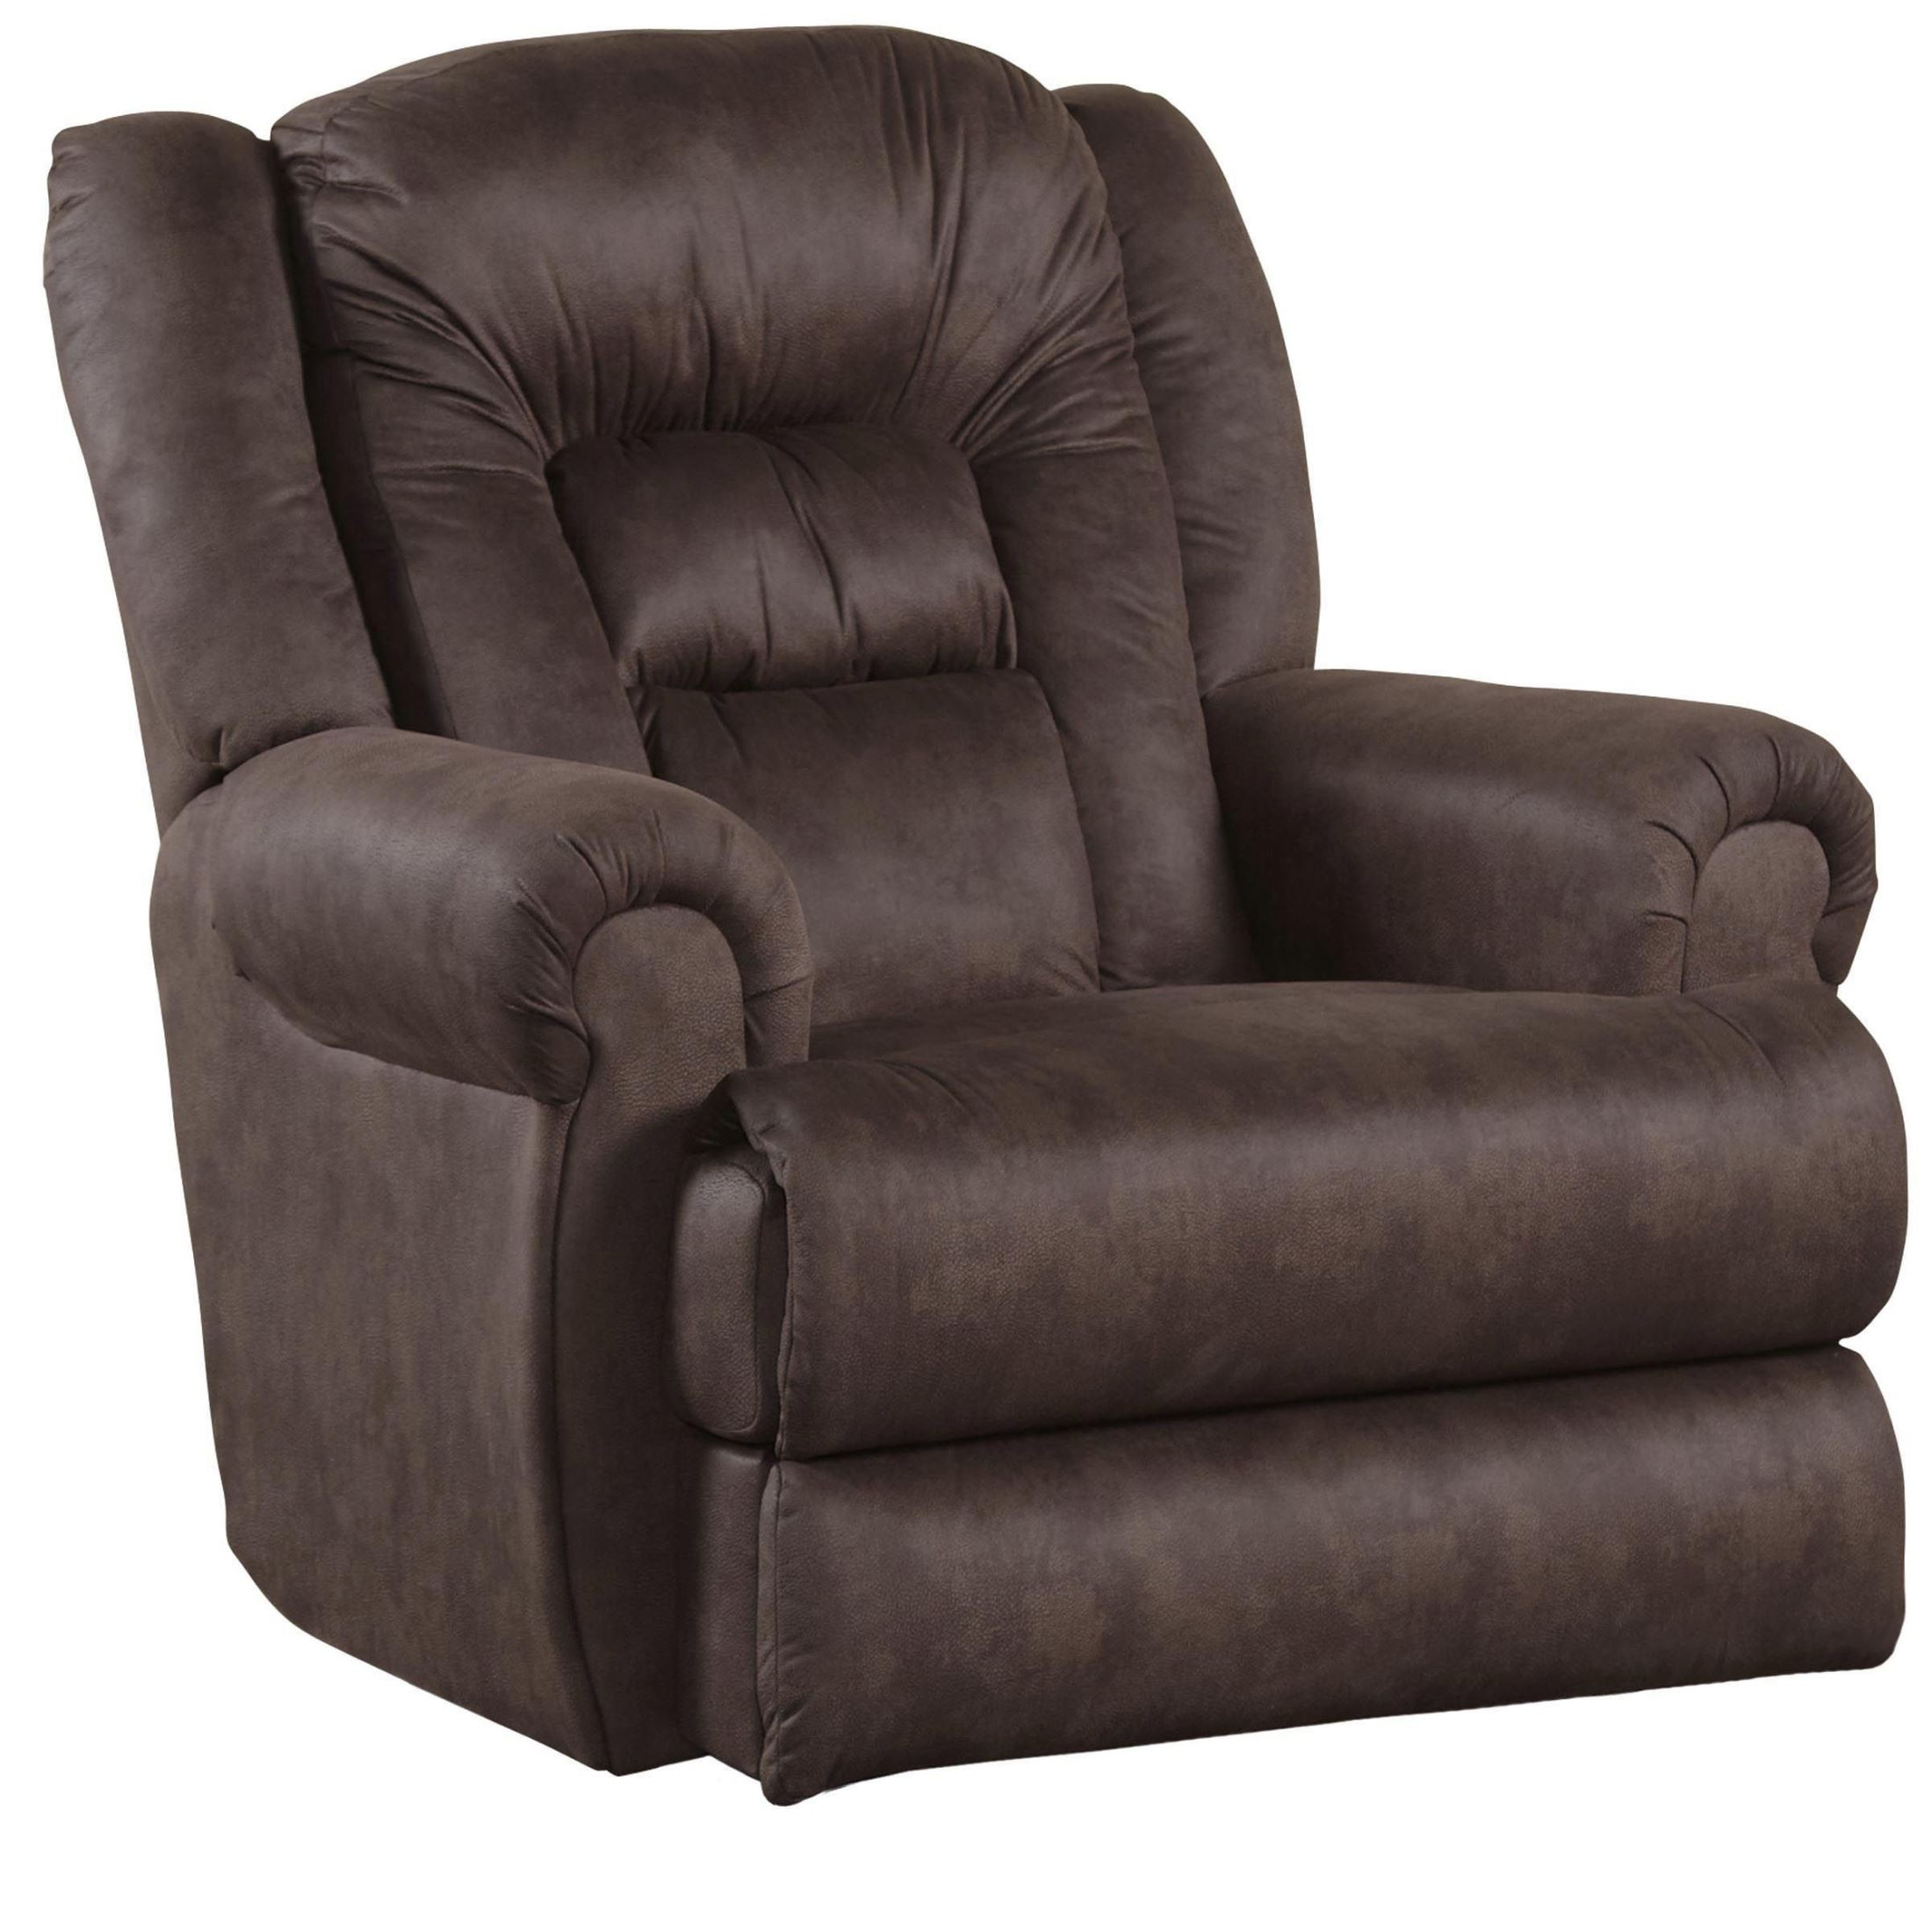 Atlas sable power recliner from catnapper for Catnapper cloud nine chaise recliner